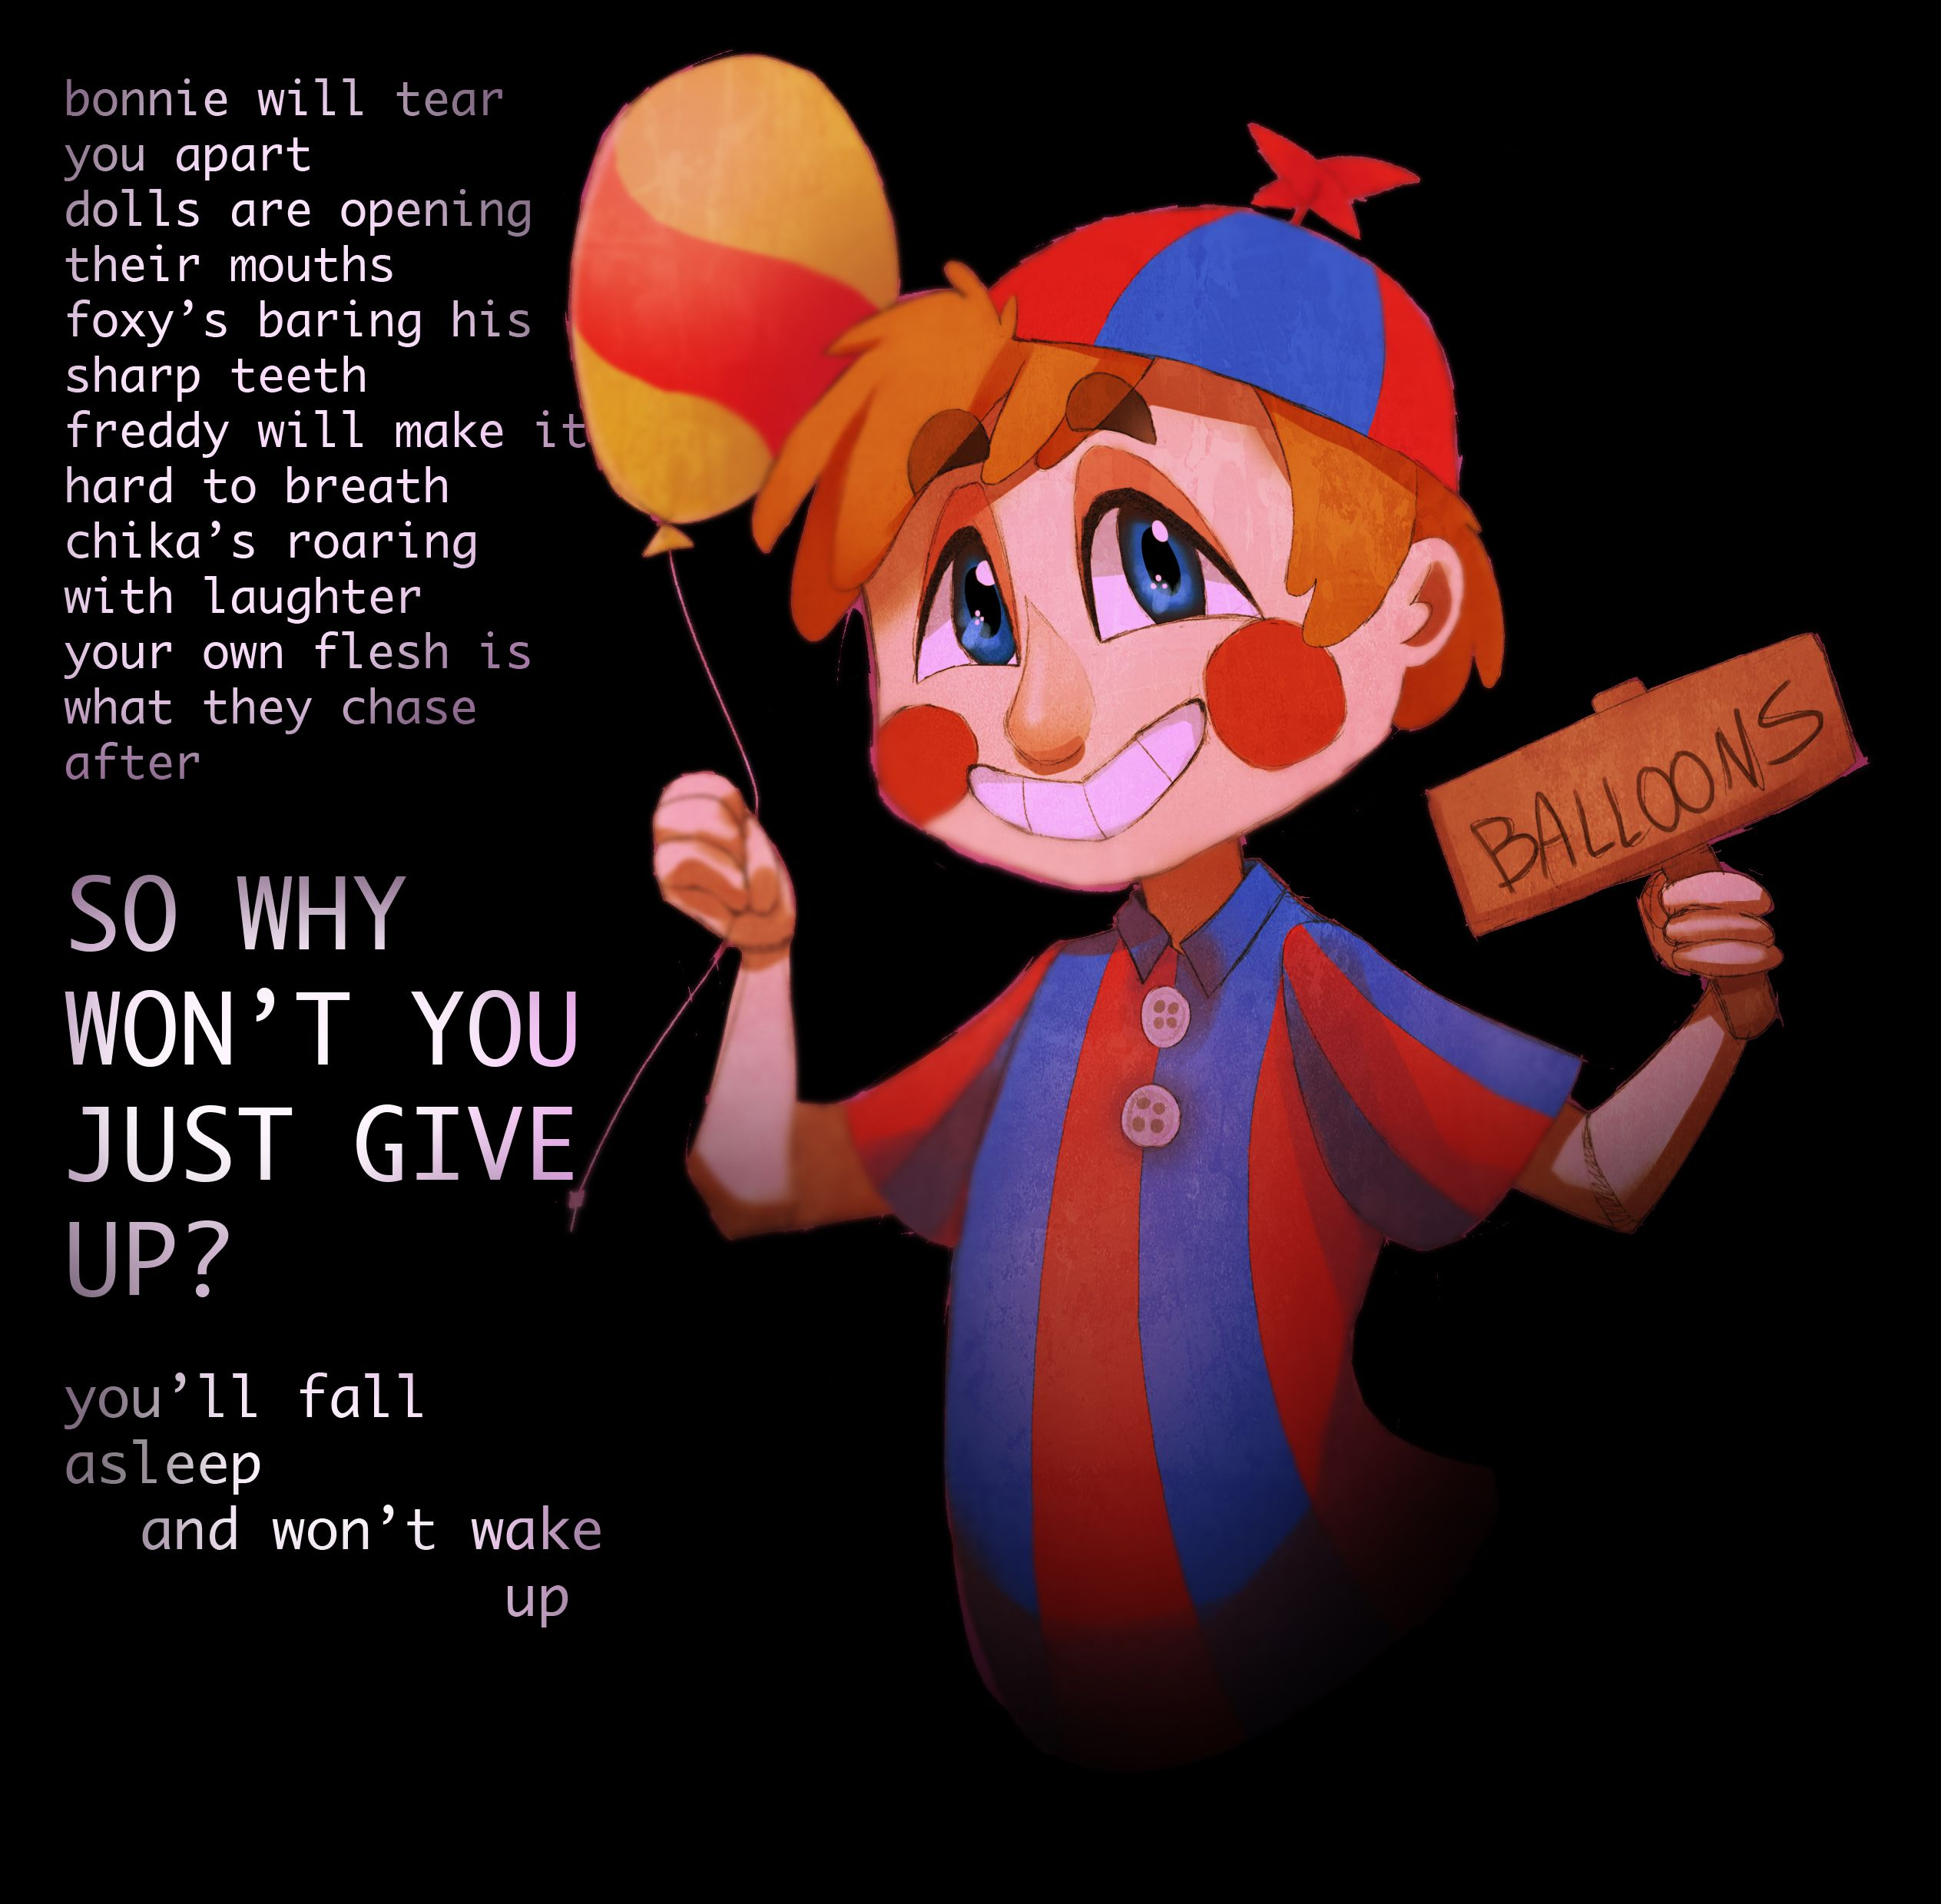 Balloon Boy - I Love The Song It's Quoting